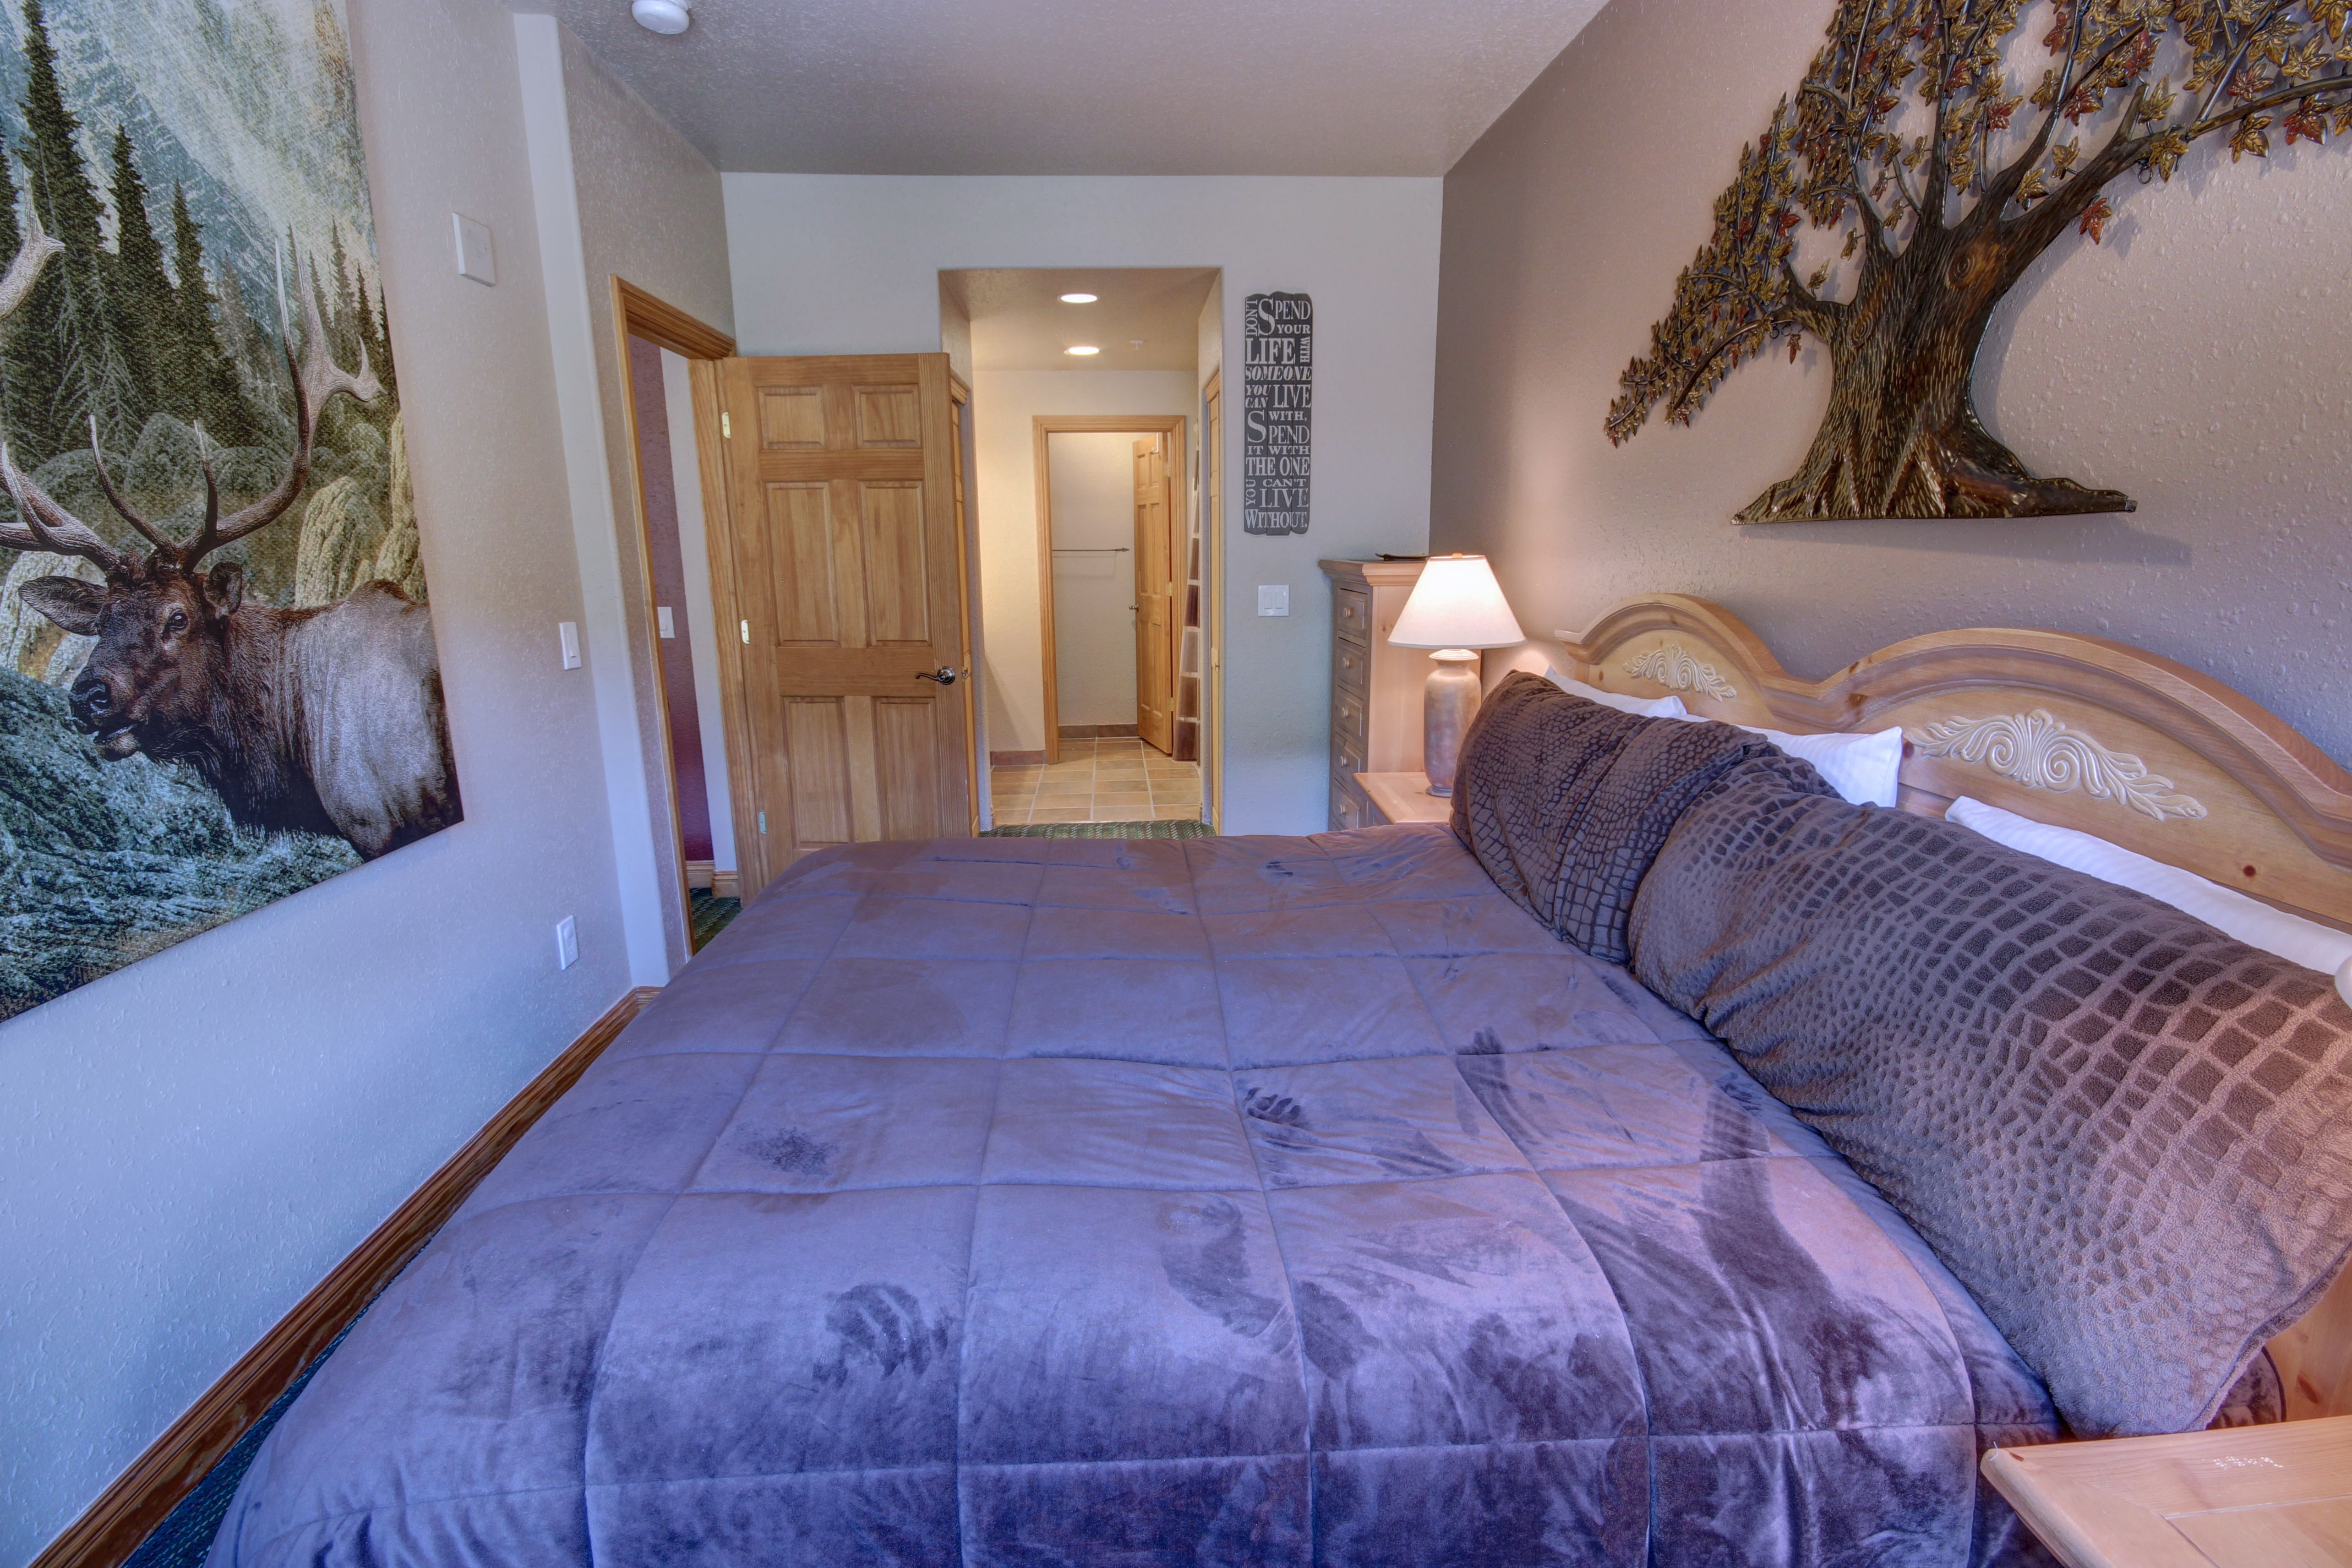 Bedroom with private bathroom and plenty of space